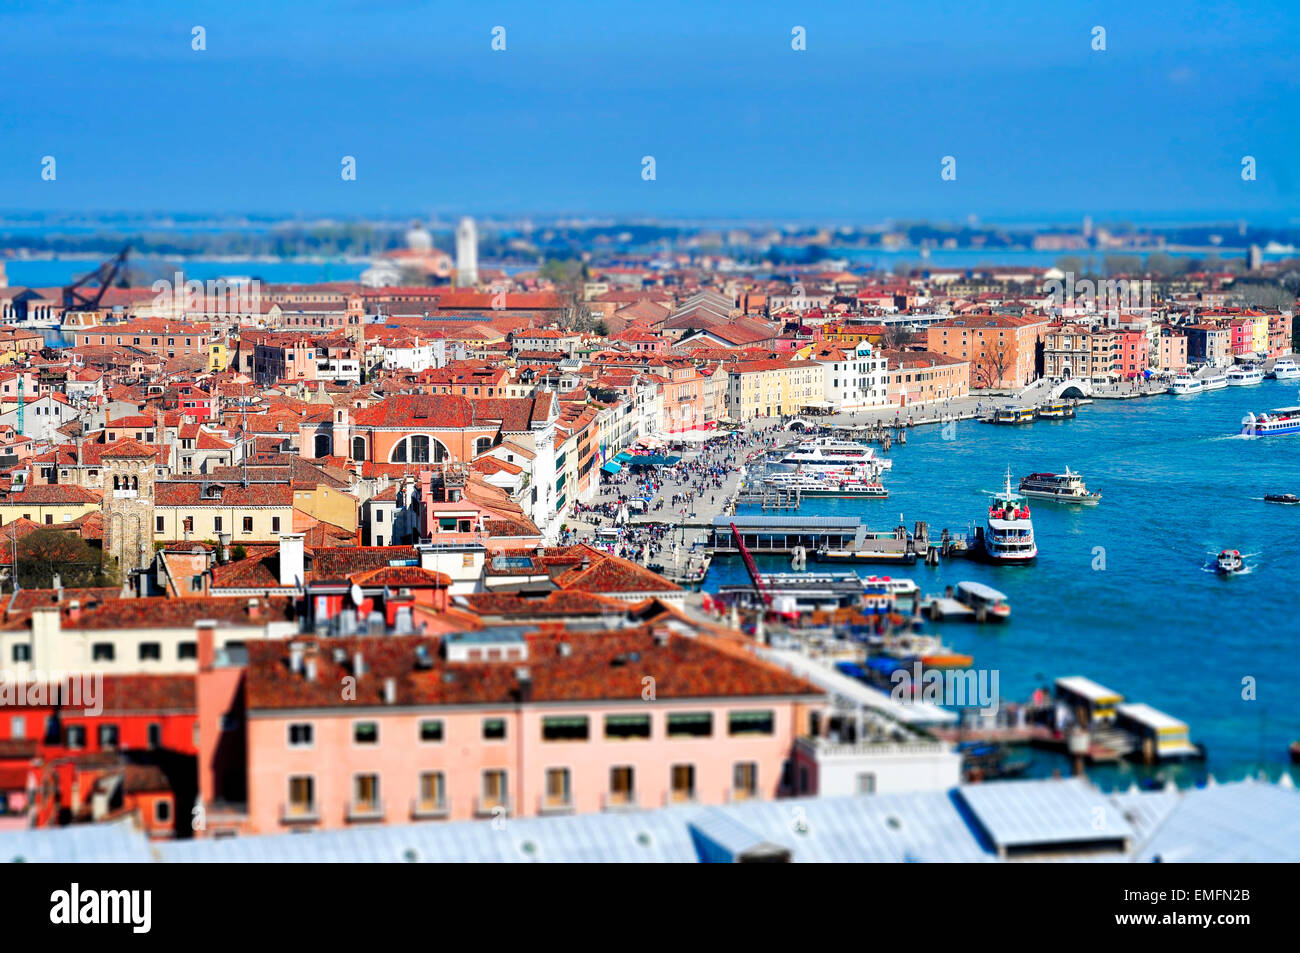 tilt-shift photography of the Castelo Sestieri in Venice, Italy, and the lagoon, with the vaporetto stops - Stock Image